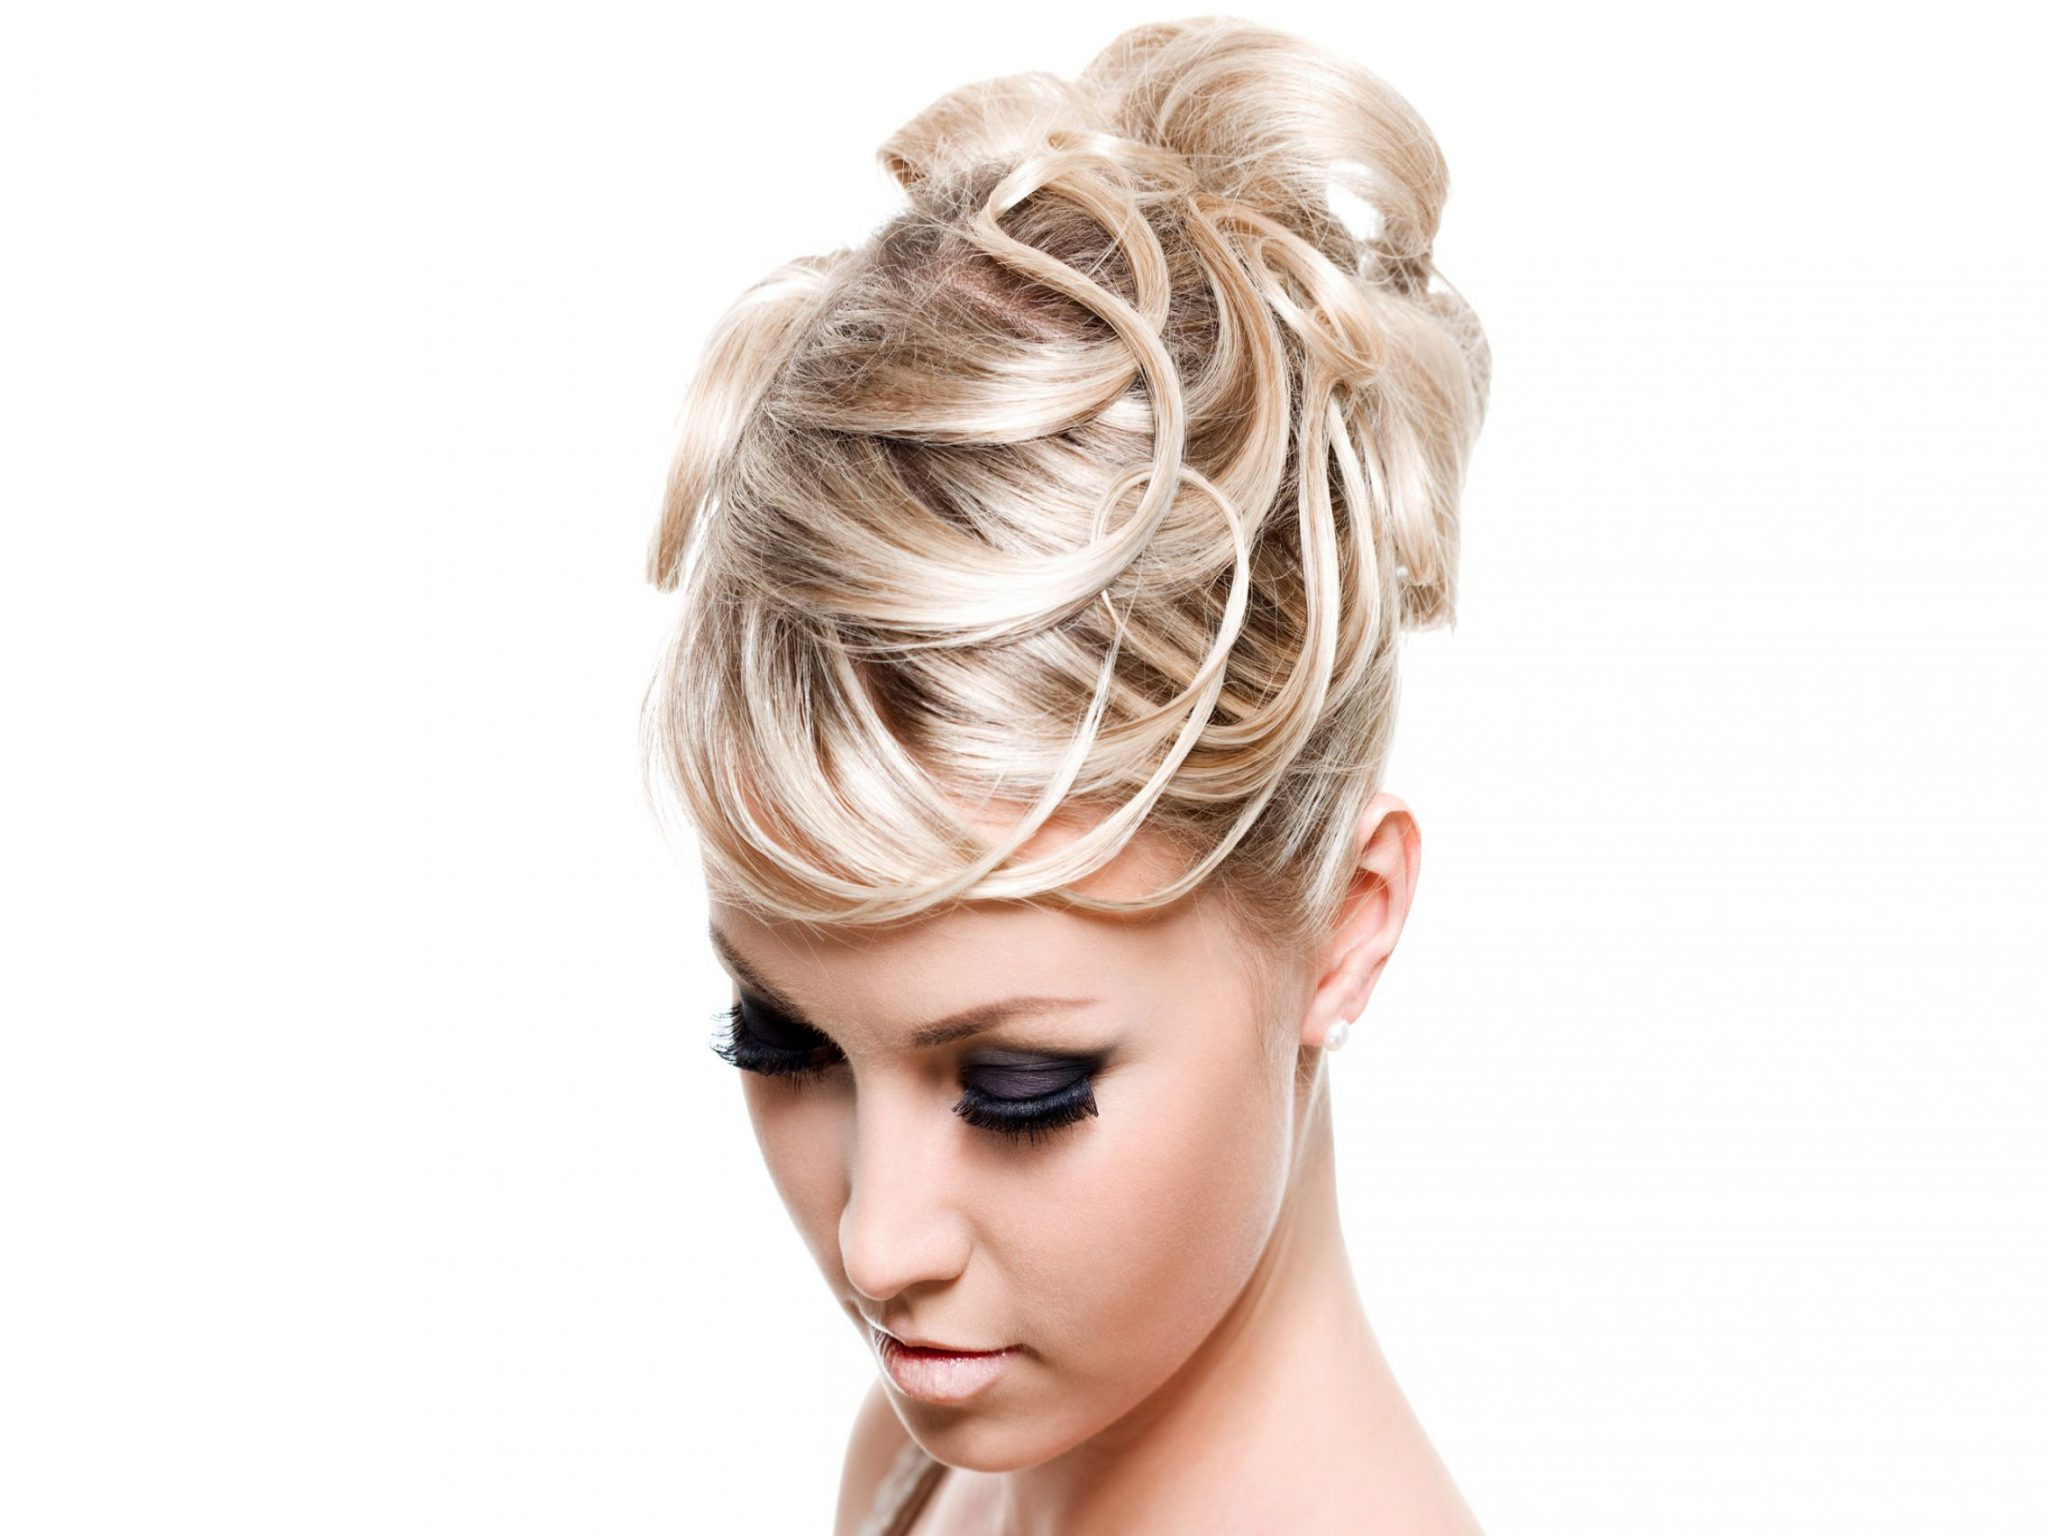 20 Best Women S Hairstyle Of 2015 Blogrope